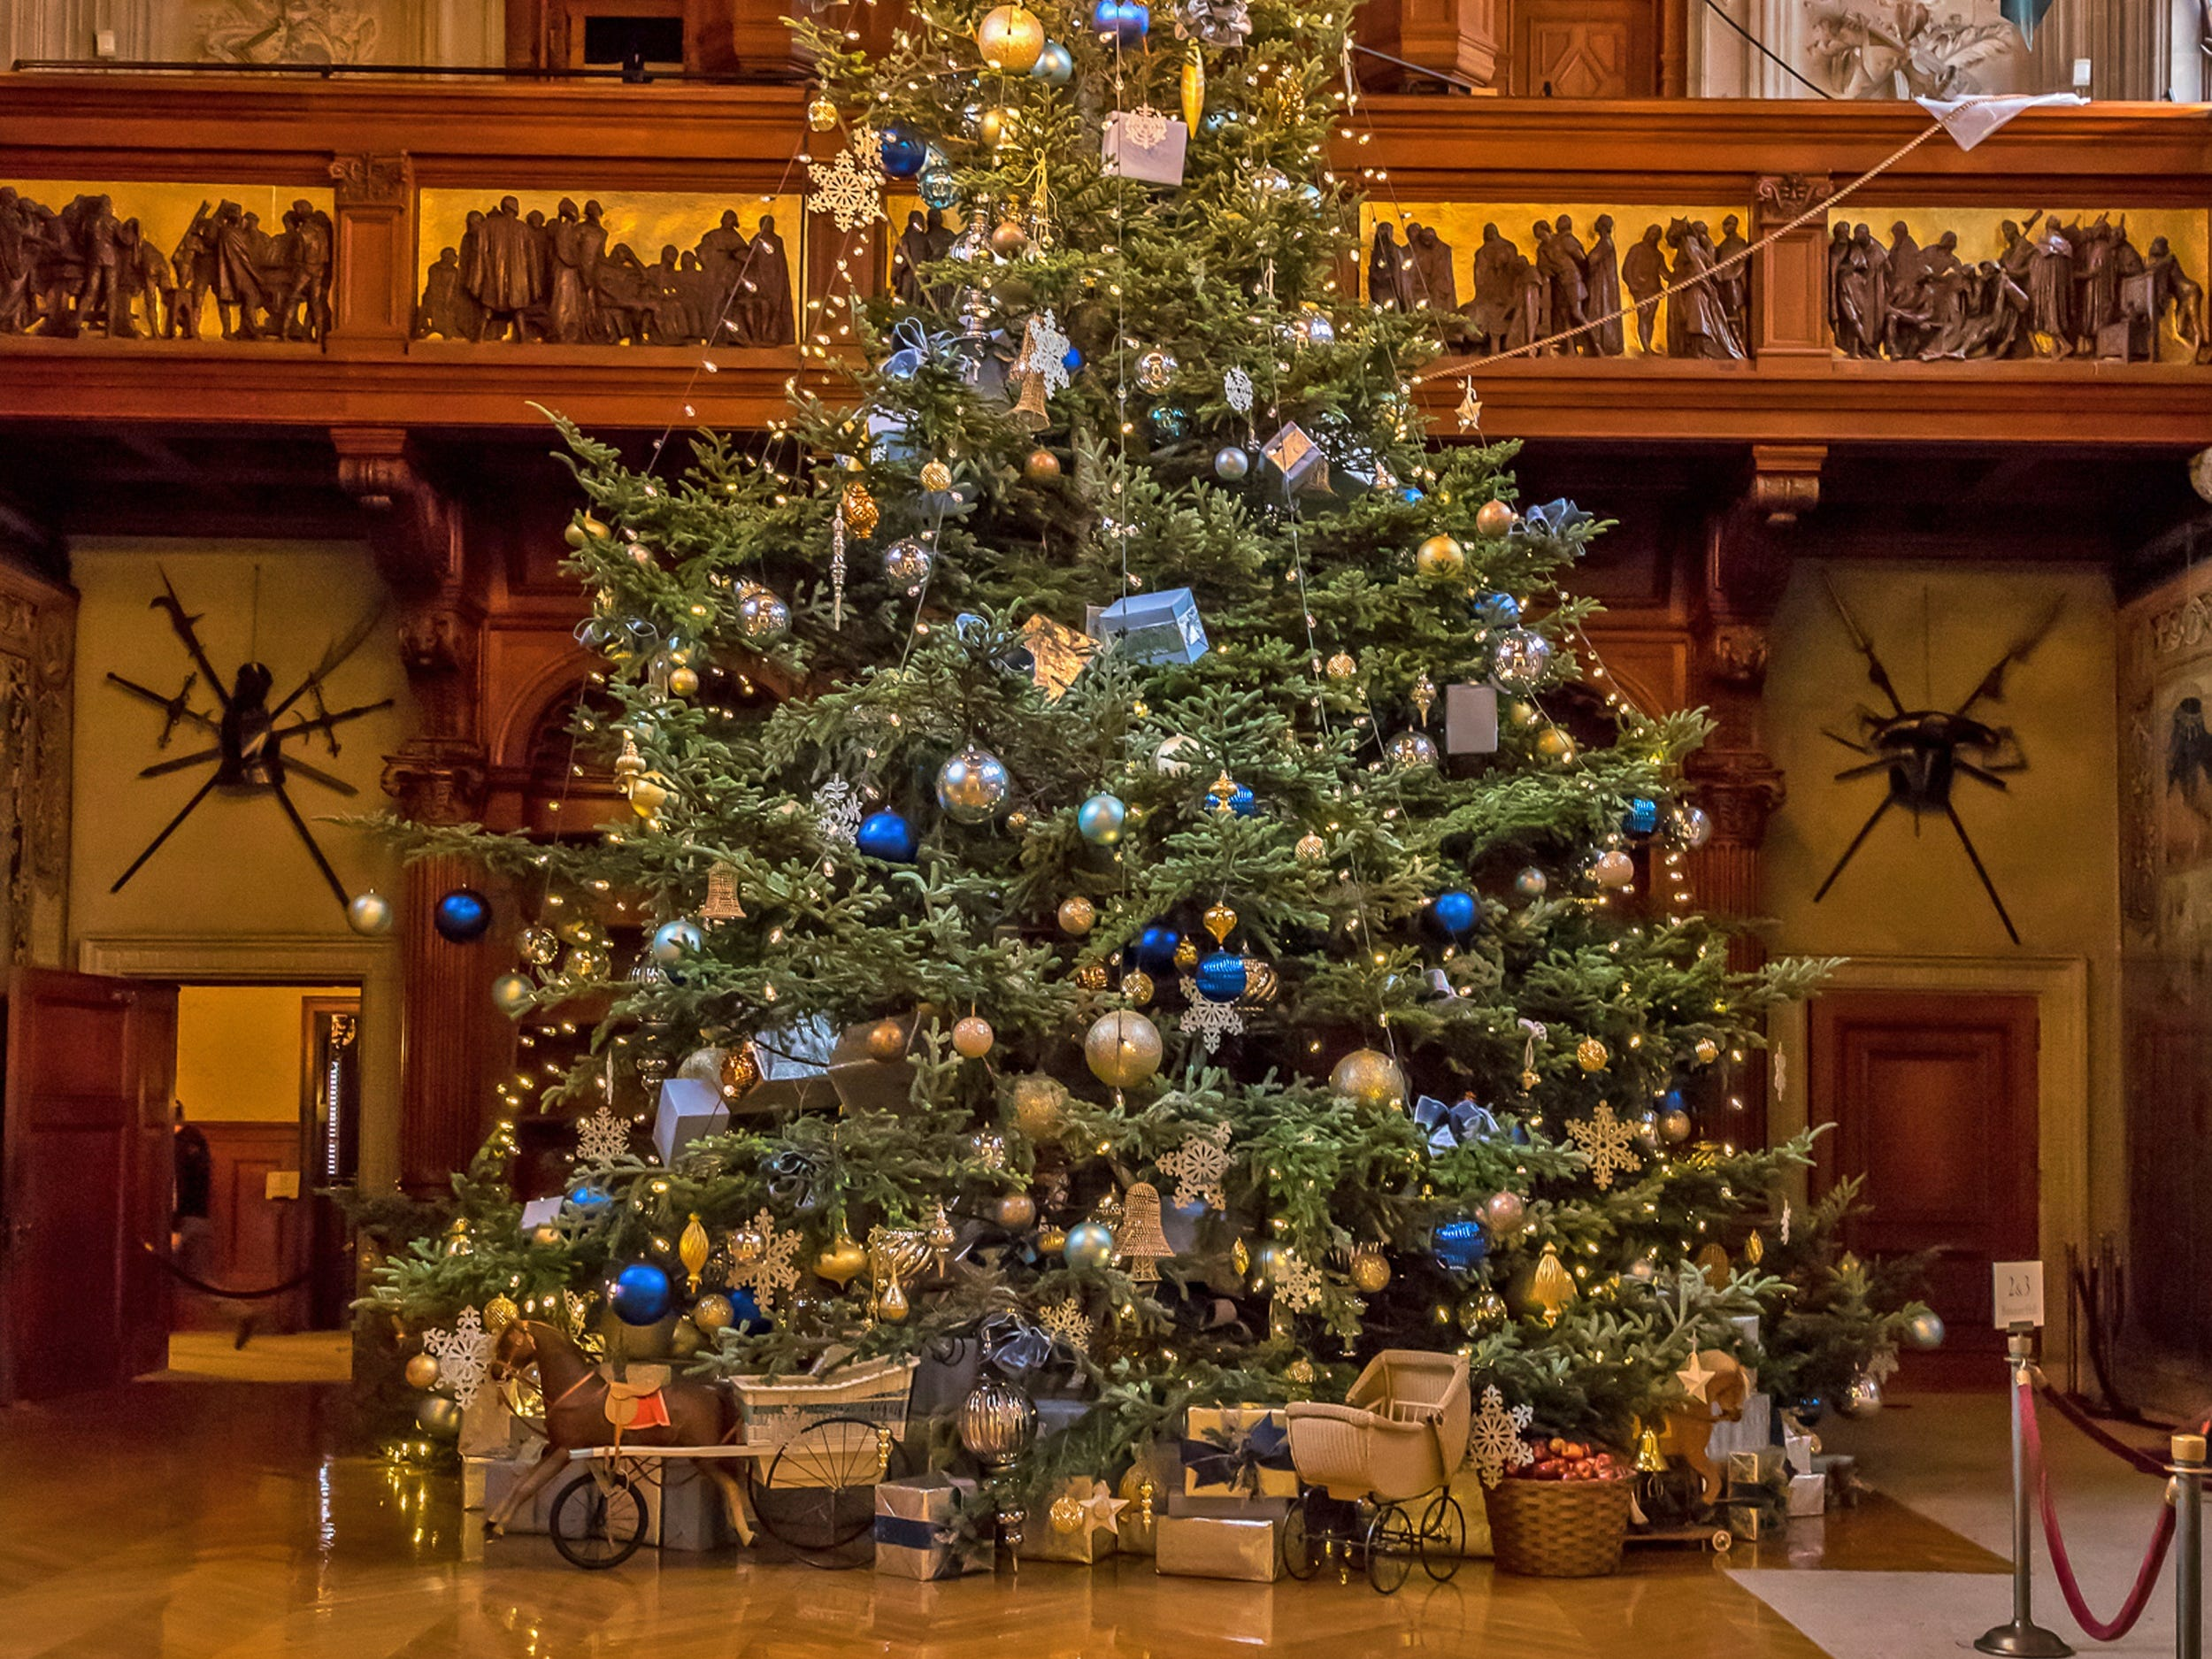 The Fraser, set up and decorated in the mansion's Banquet Hall, is a centerpiece of Biltmore holiday events. This photo is of the 2017 tree. The 2018 Fraser – 35 feet tall – is on display through Jan. 8 at Biltmore.